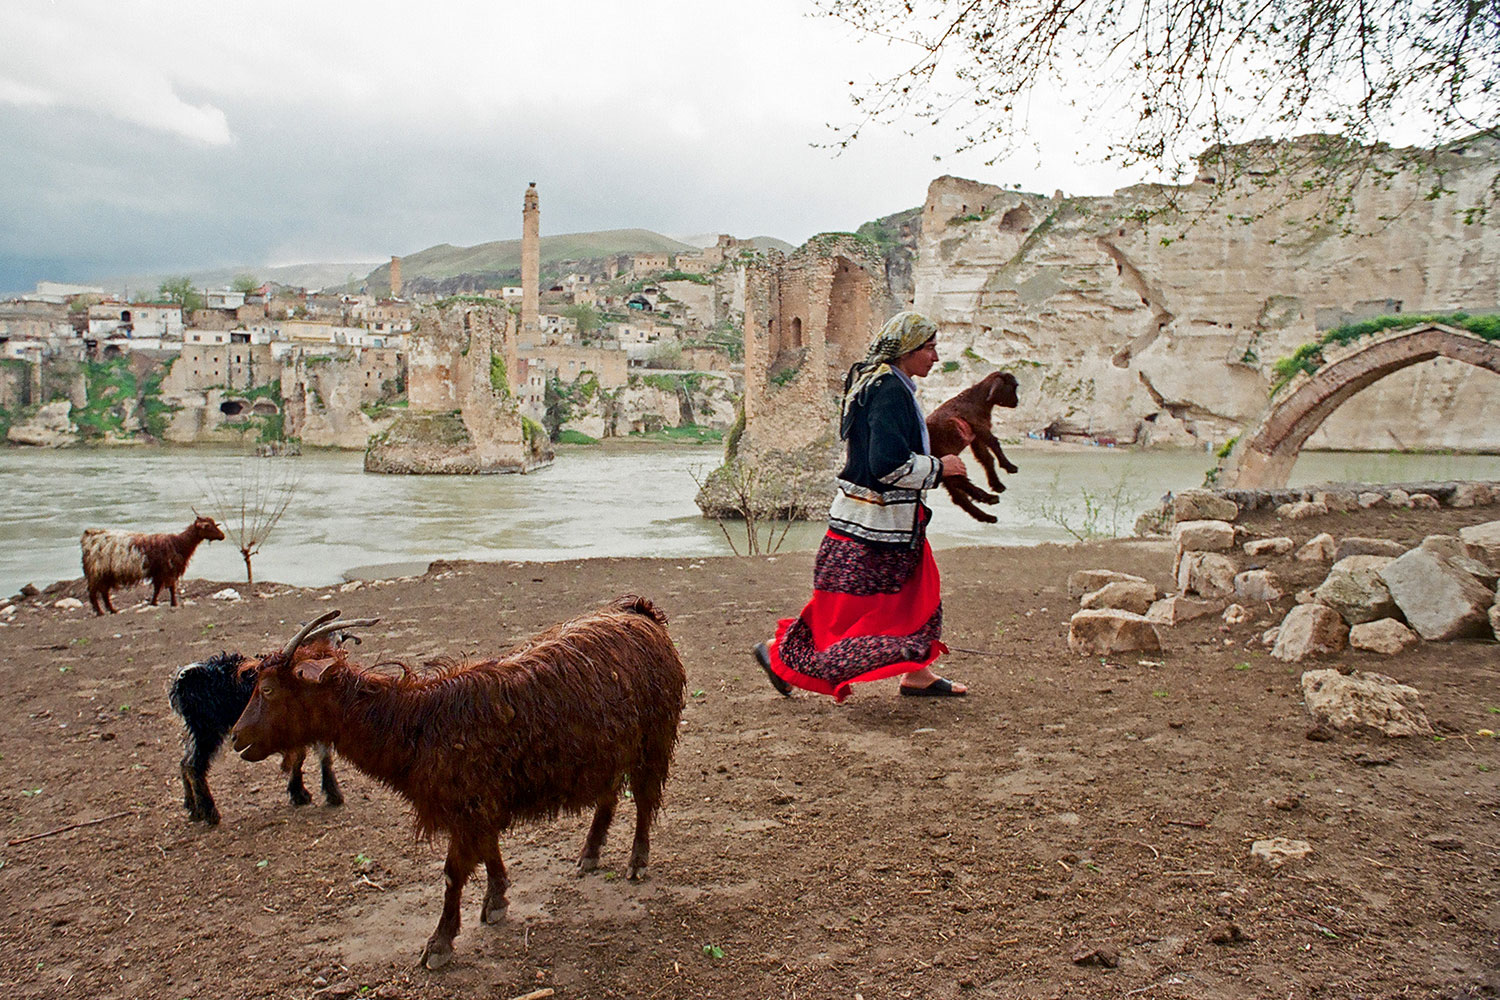 Kurdish woman tending her flock in Hasankeyf, Turkey, 2004.